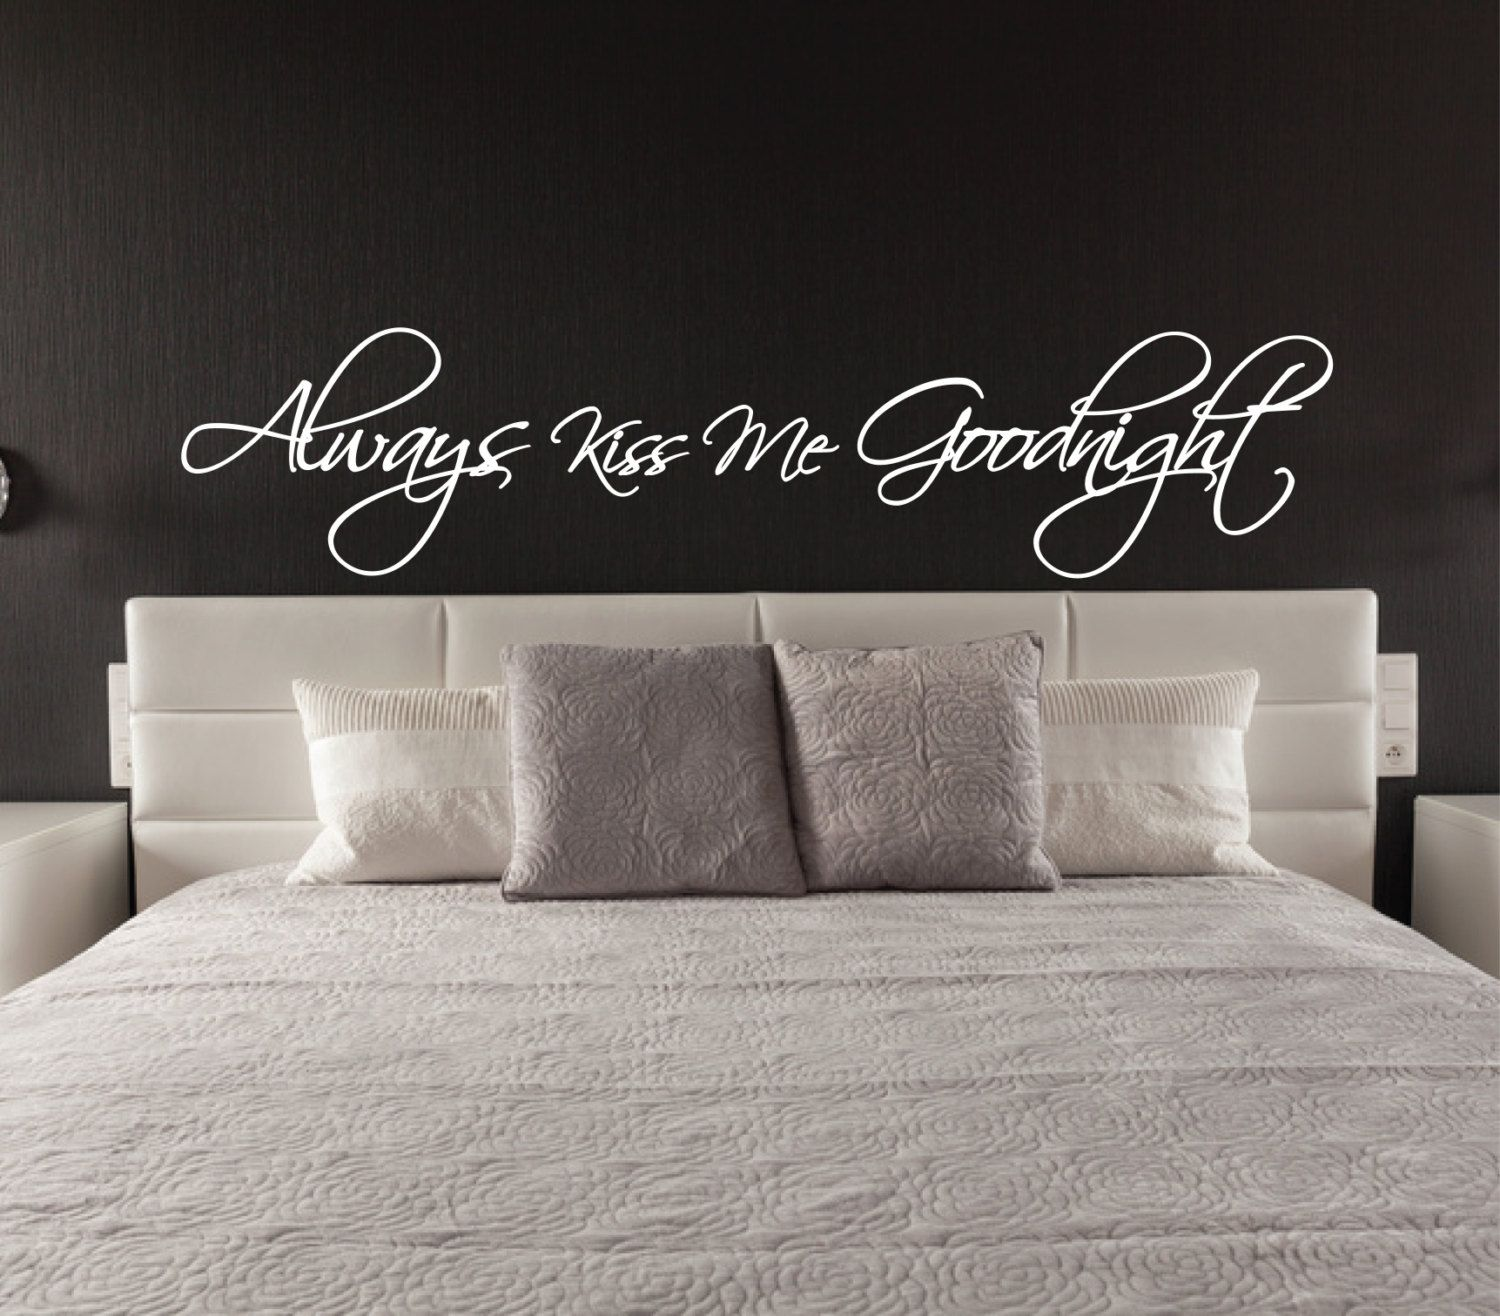 Above Bed Wall Sticker Always Kiss Me Goodnight L Over Bed Decor - Wall decals above bed